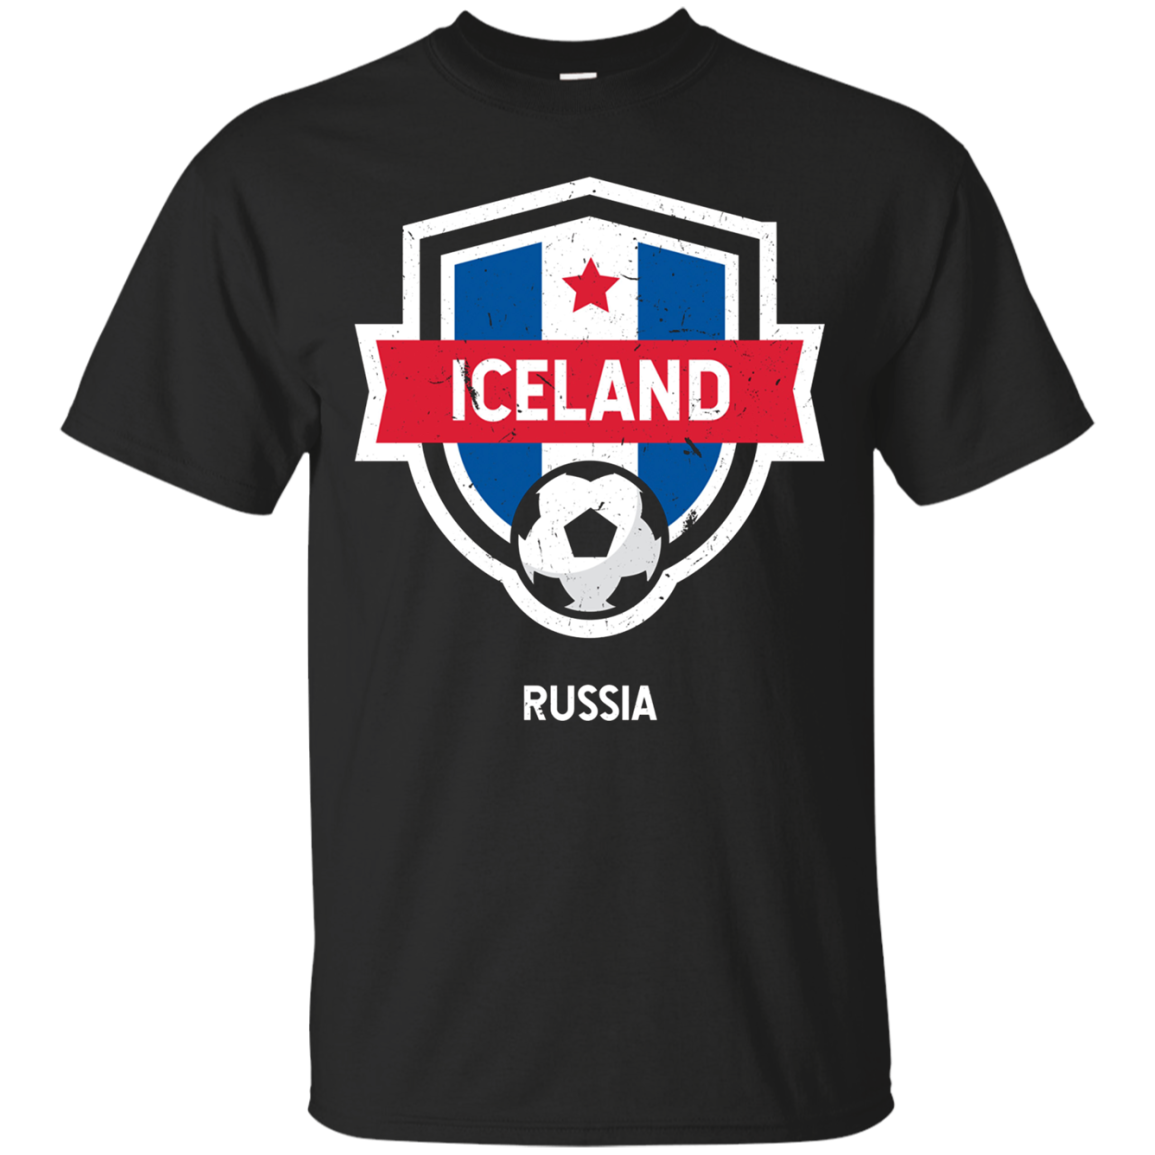 Classic Iceland Football 2018 Team, Russia